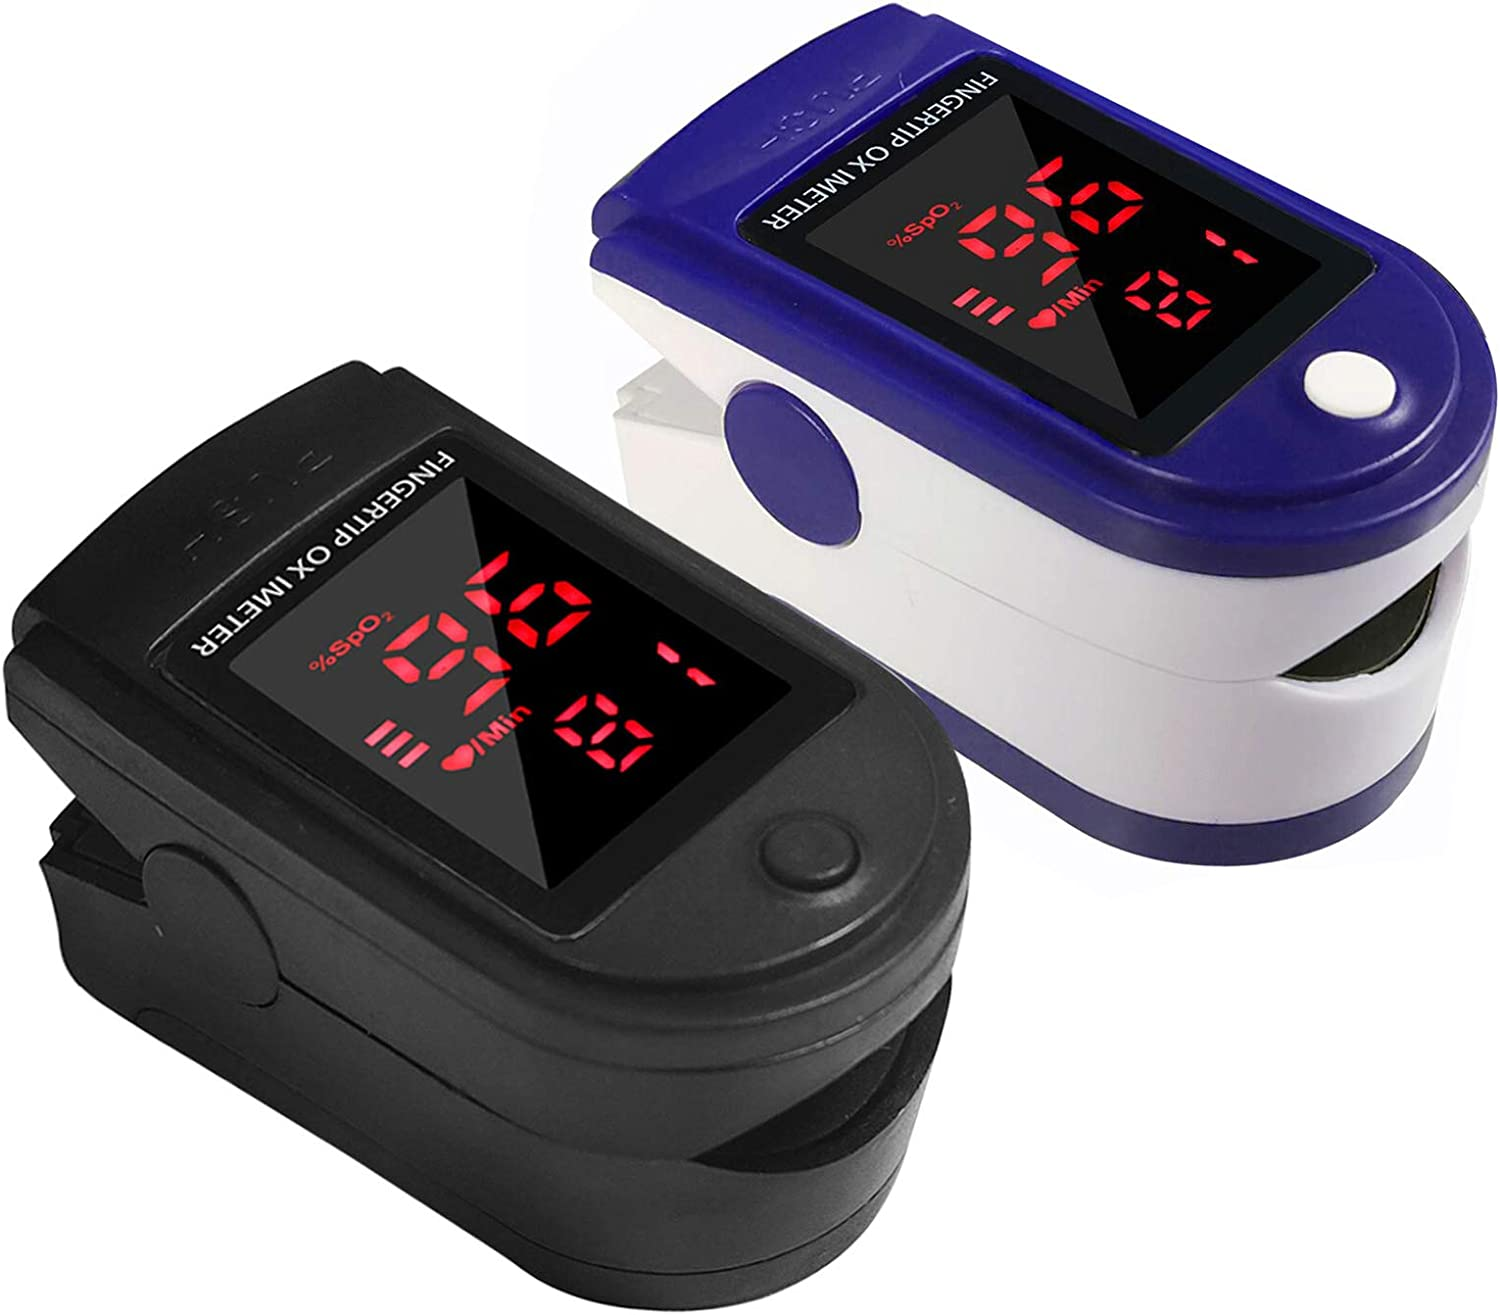 70% Off Coupon – 2-Pack Portable Pulse Oximetry Measuring Tool